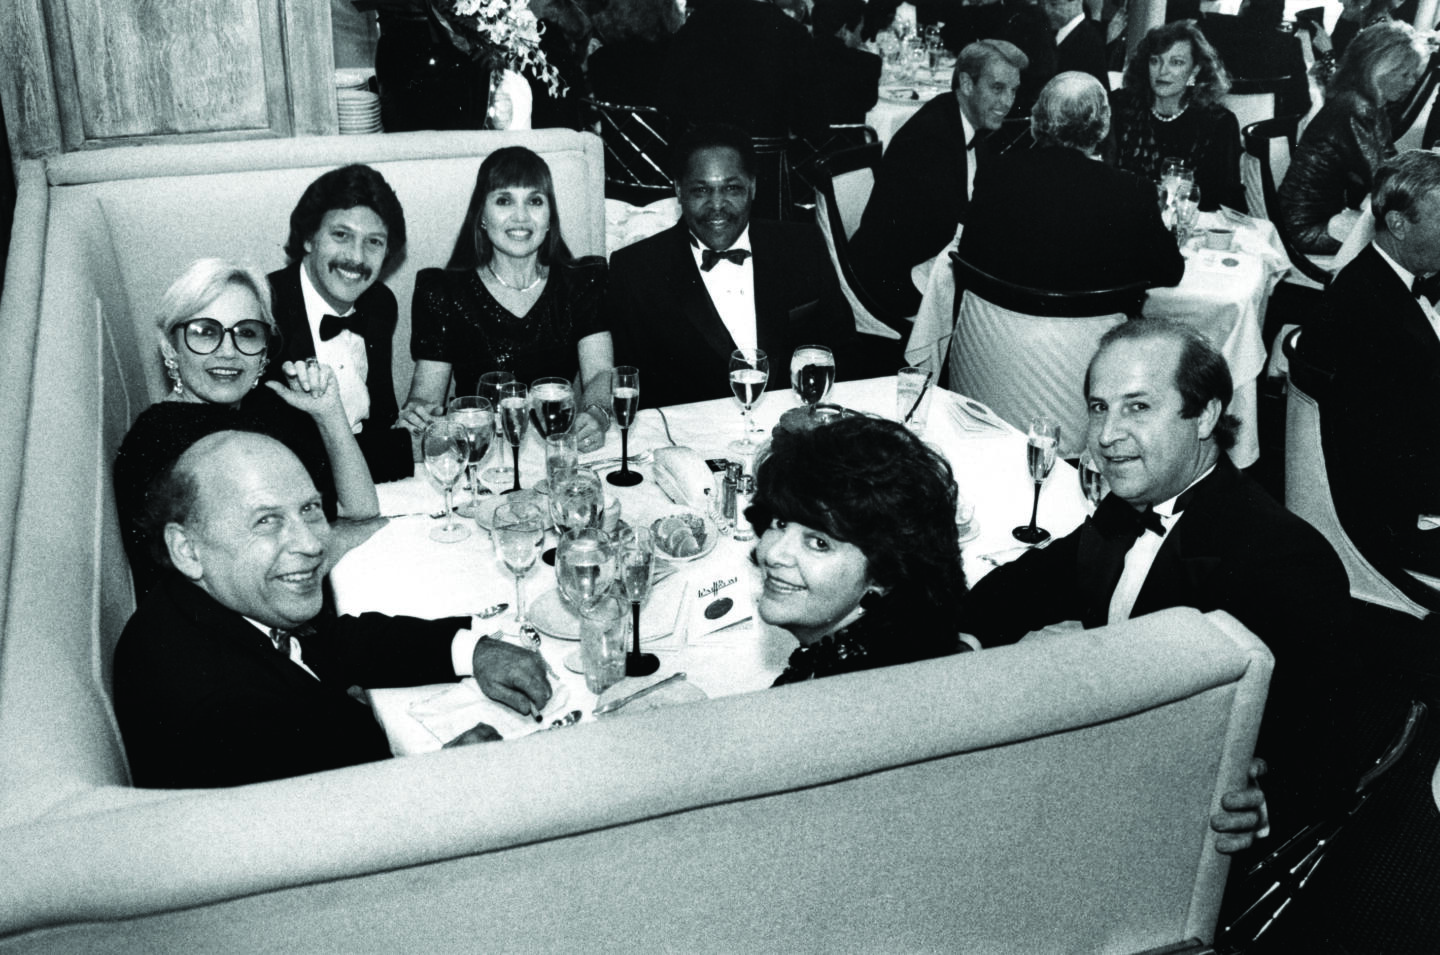 Richard and Martha Melman in Booth One at The Pump Room with baseball infielder Dave Nelson, Jane and Bernie Sahlins, Joyce Sloan and Danny Coval.